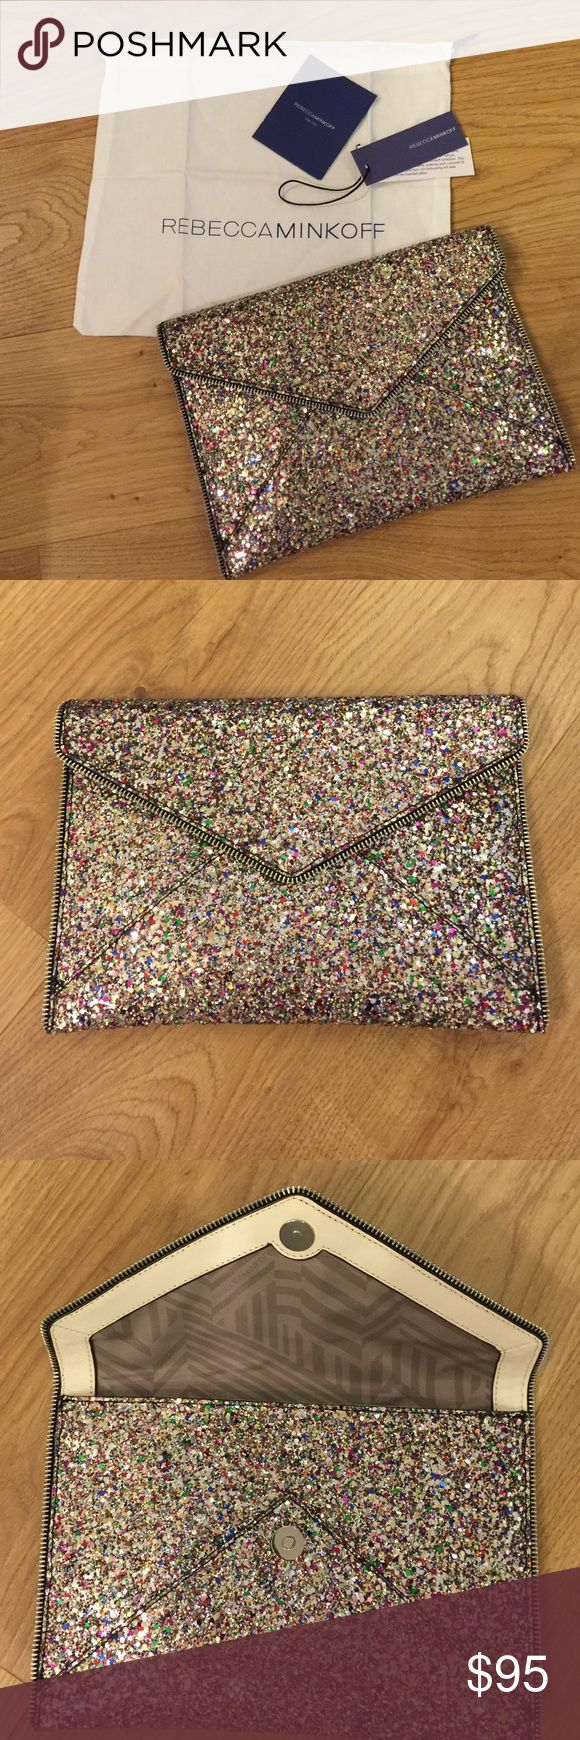 NWT- Rebecca Minkoff Glitter Clutch! Rebecca Minkoff Leo Envelope Clutch. Silver/ multicolored glitter! NWT perfect condition. Credit card holders on inside with flap closure. Purchased from Nordstrom in Dec 2016. Currently sold out on Nordstrom and Neiman Marcus. Comes with dust bag. Rebecca Minkoff Bags Clutches & Wristlets